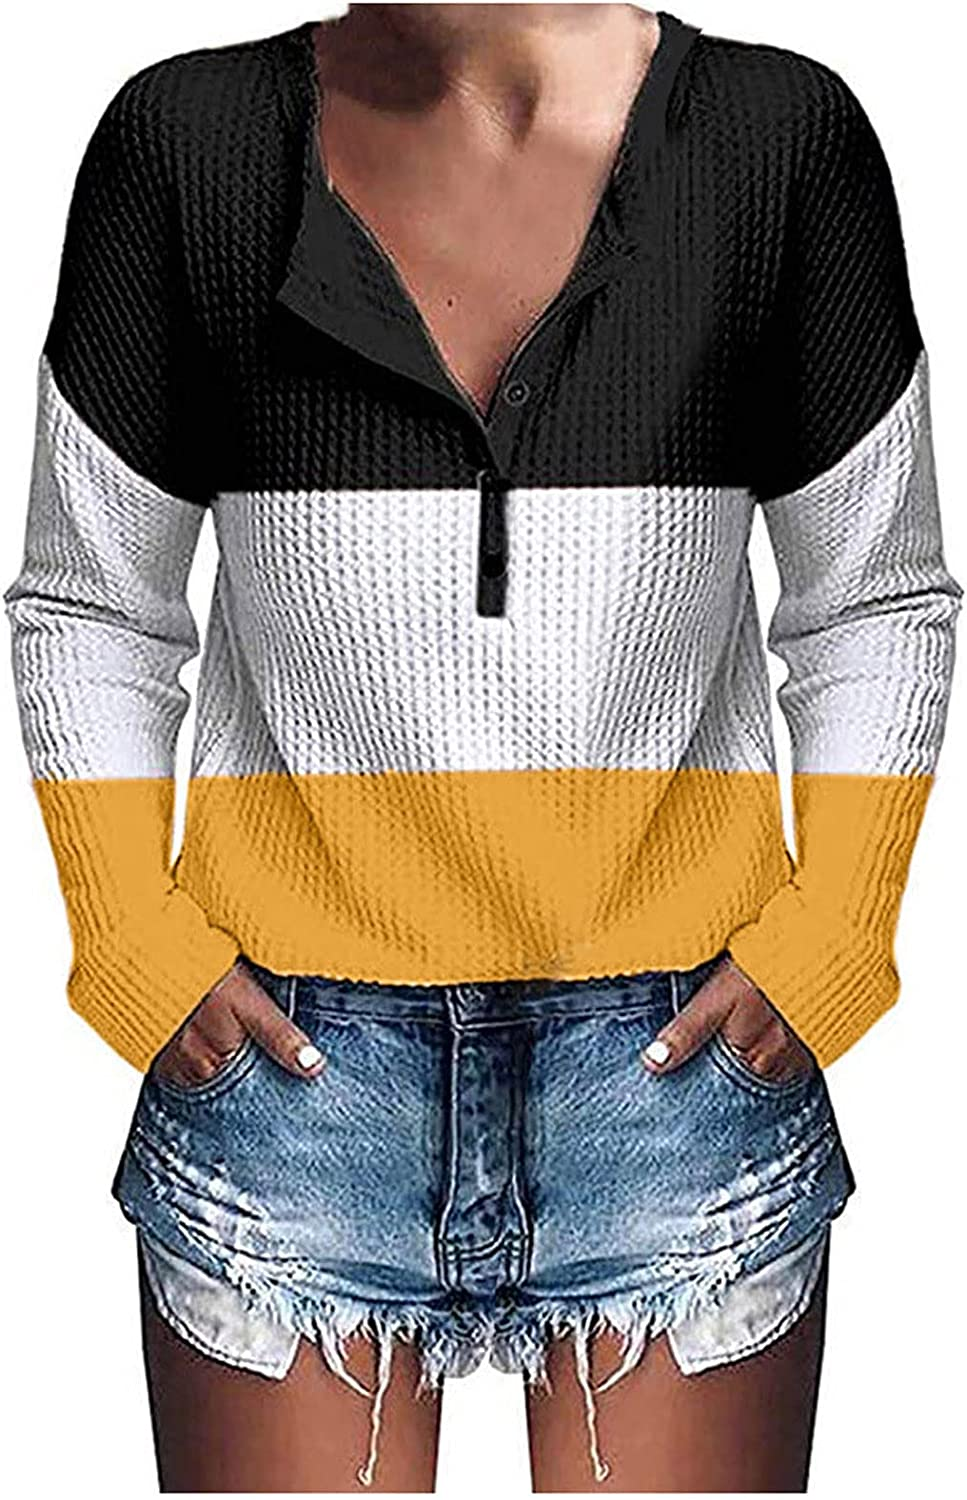 Women Knitted Sweaters Tops Splicing Shirts Button Down Blouse Long Sleeve Fall Jumper Pullover Trendy Comfy Tunic